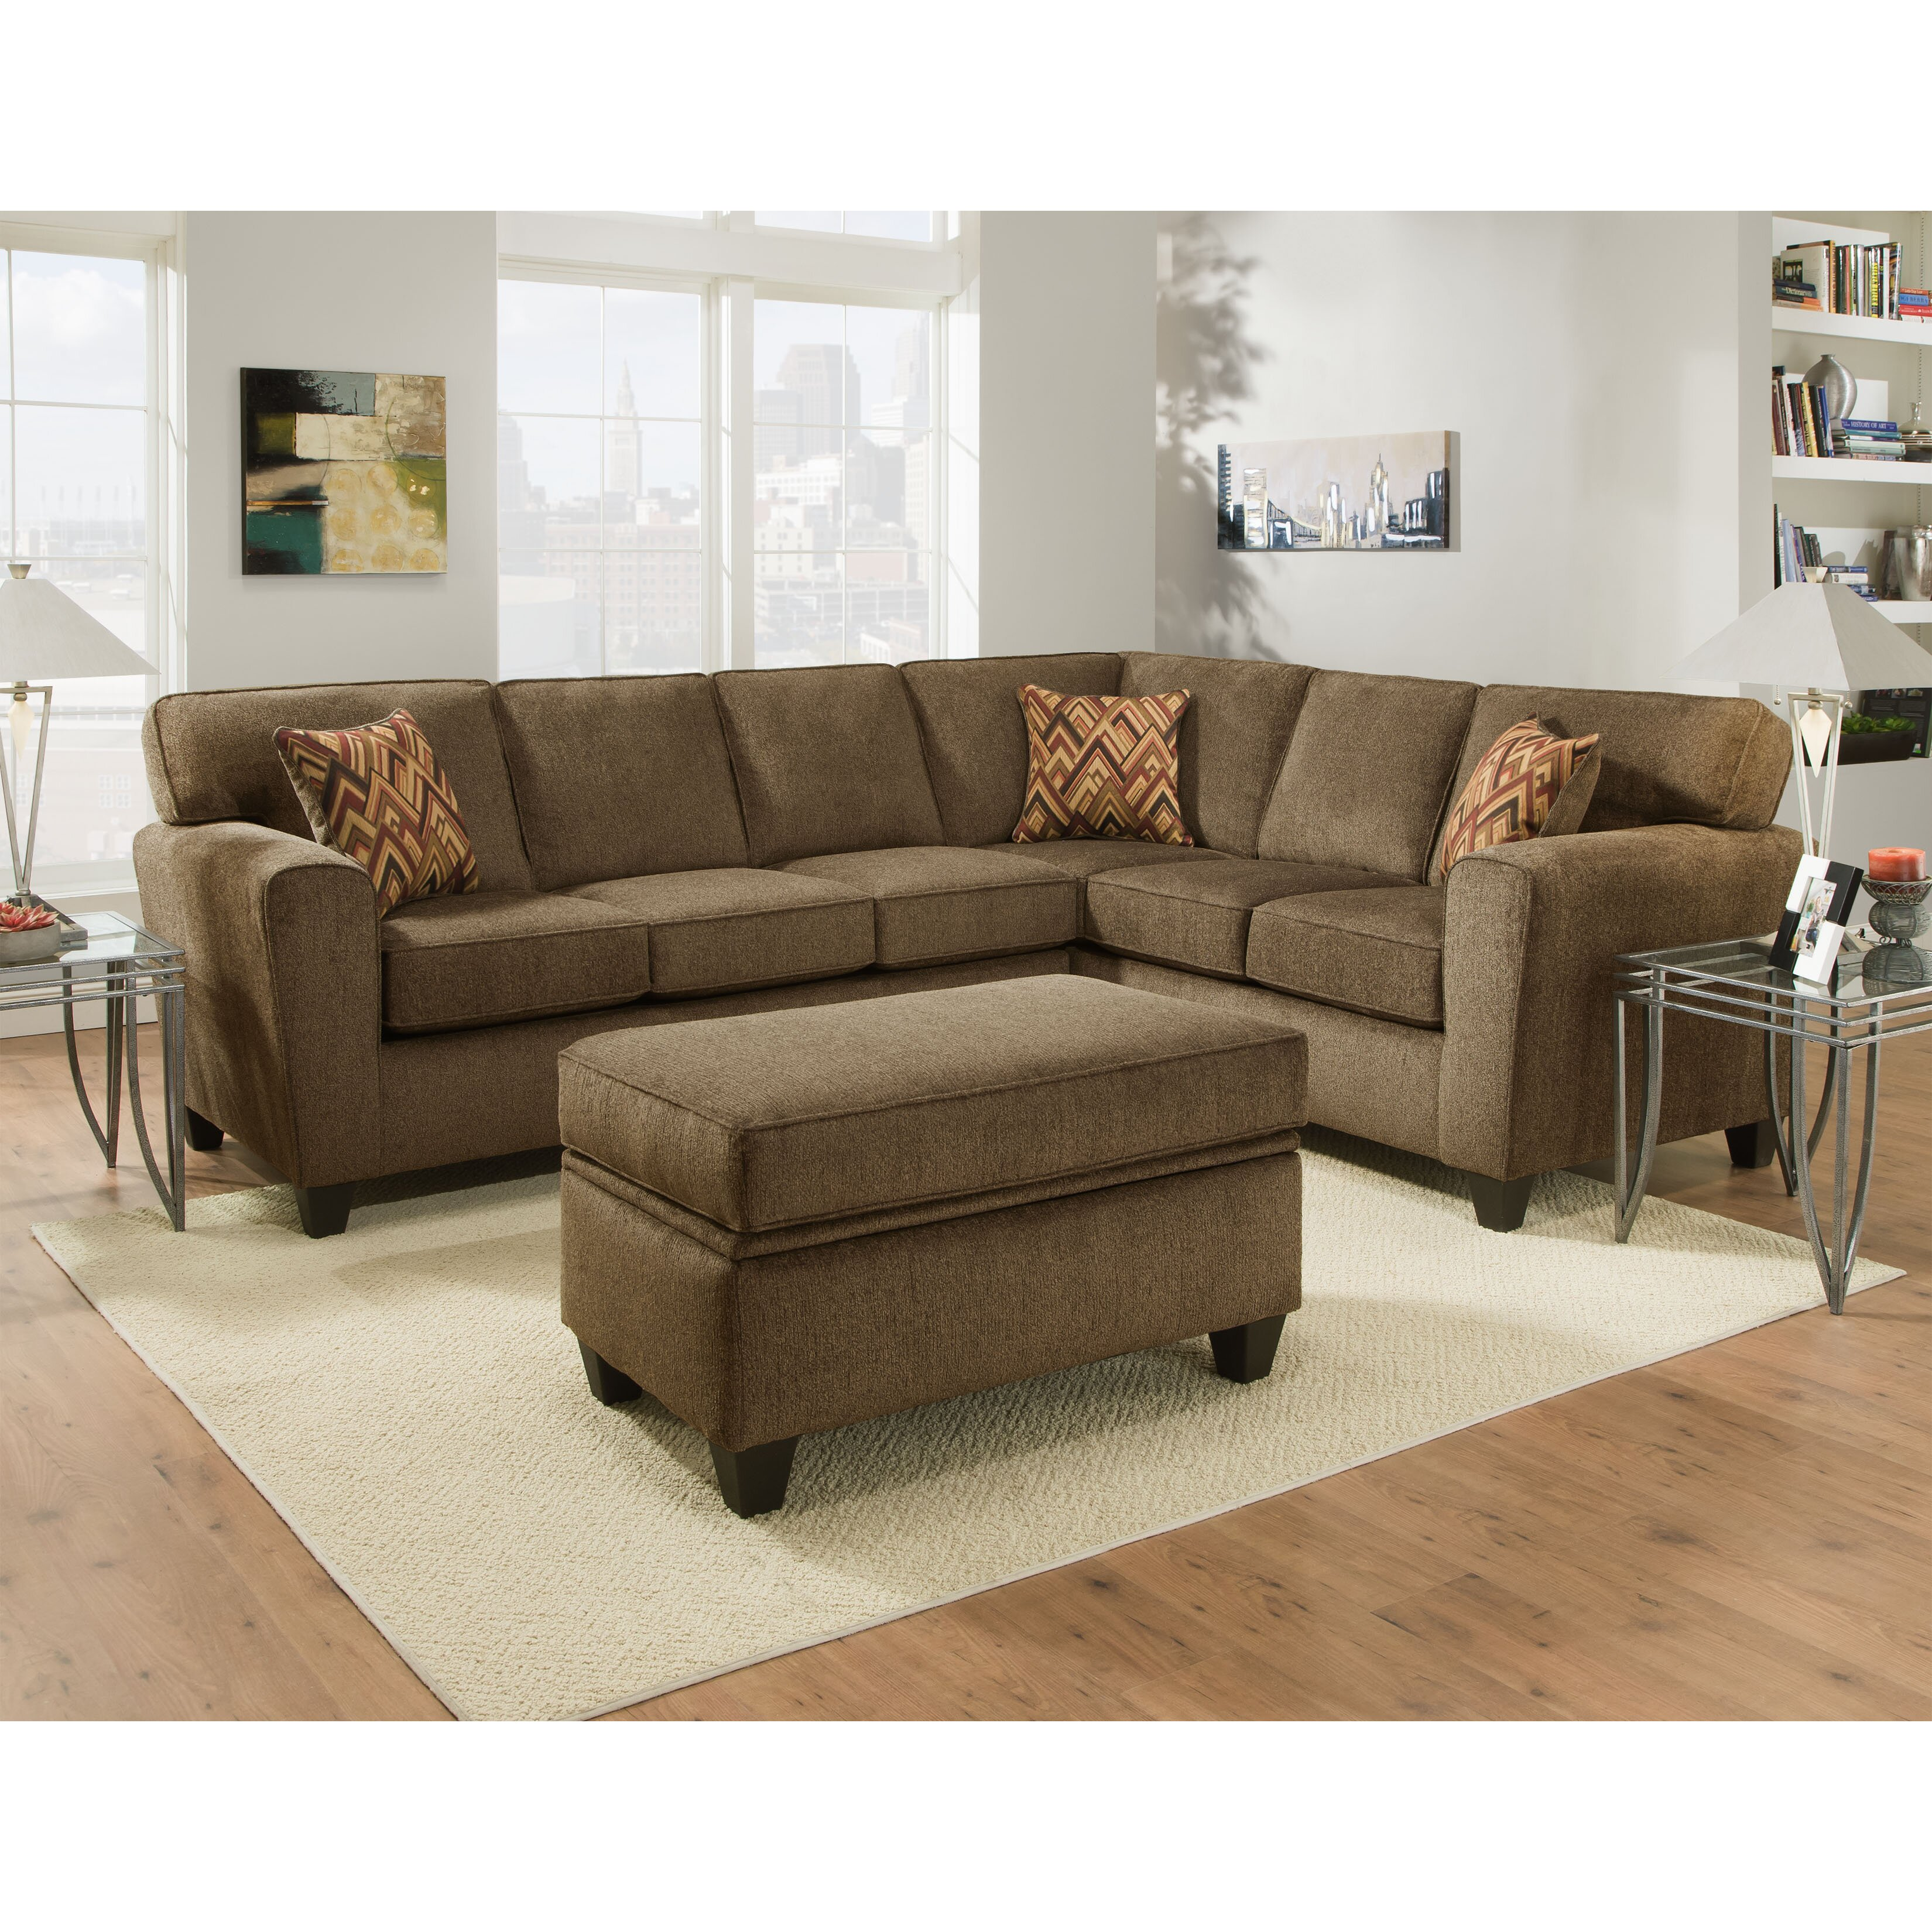 Brady Furniture Industries Pulaski Sectional Reviews Wayfair